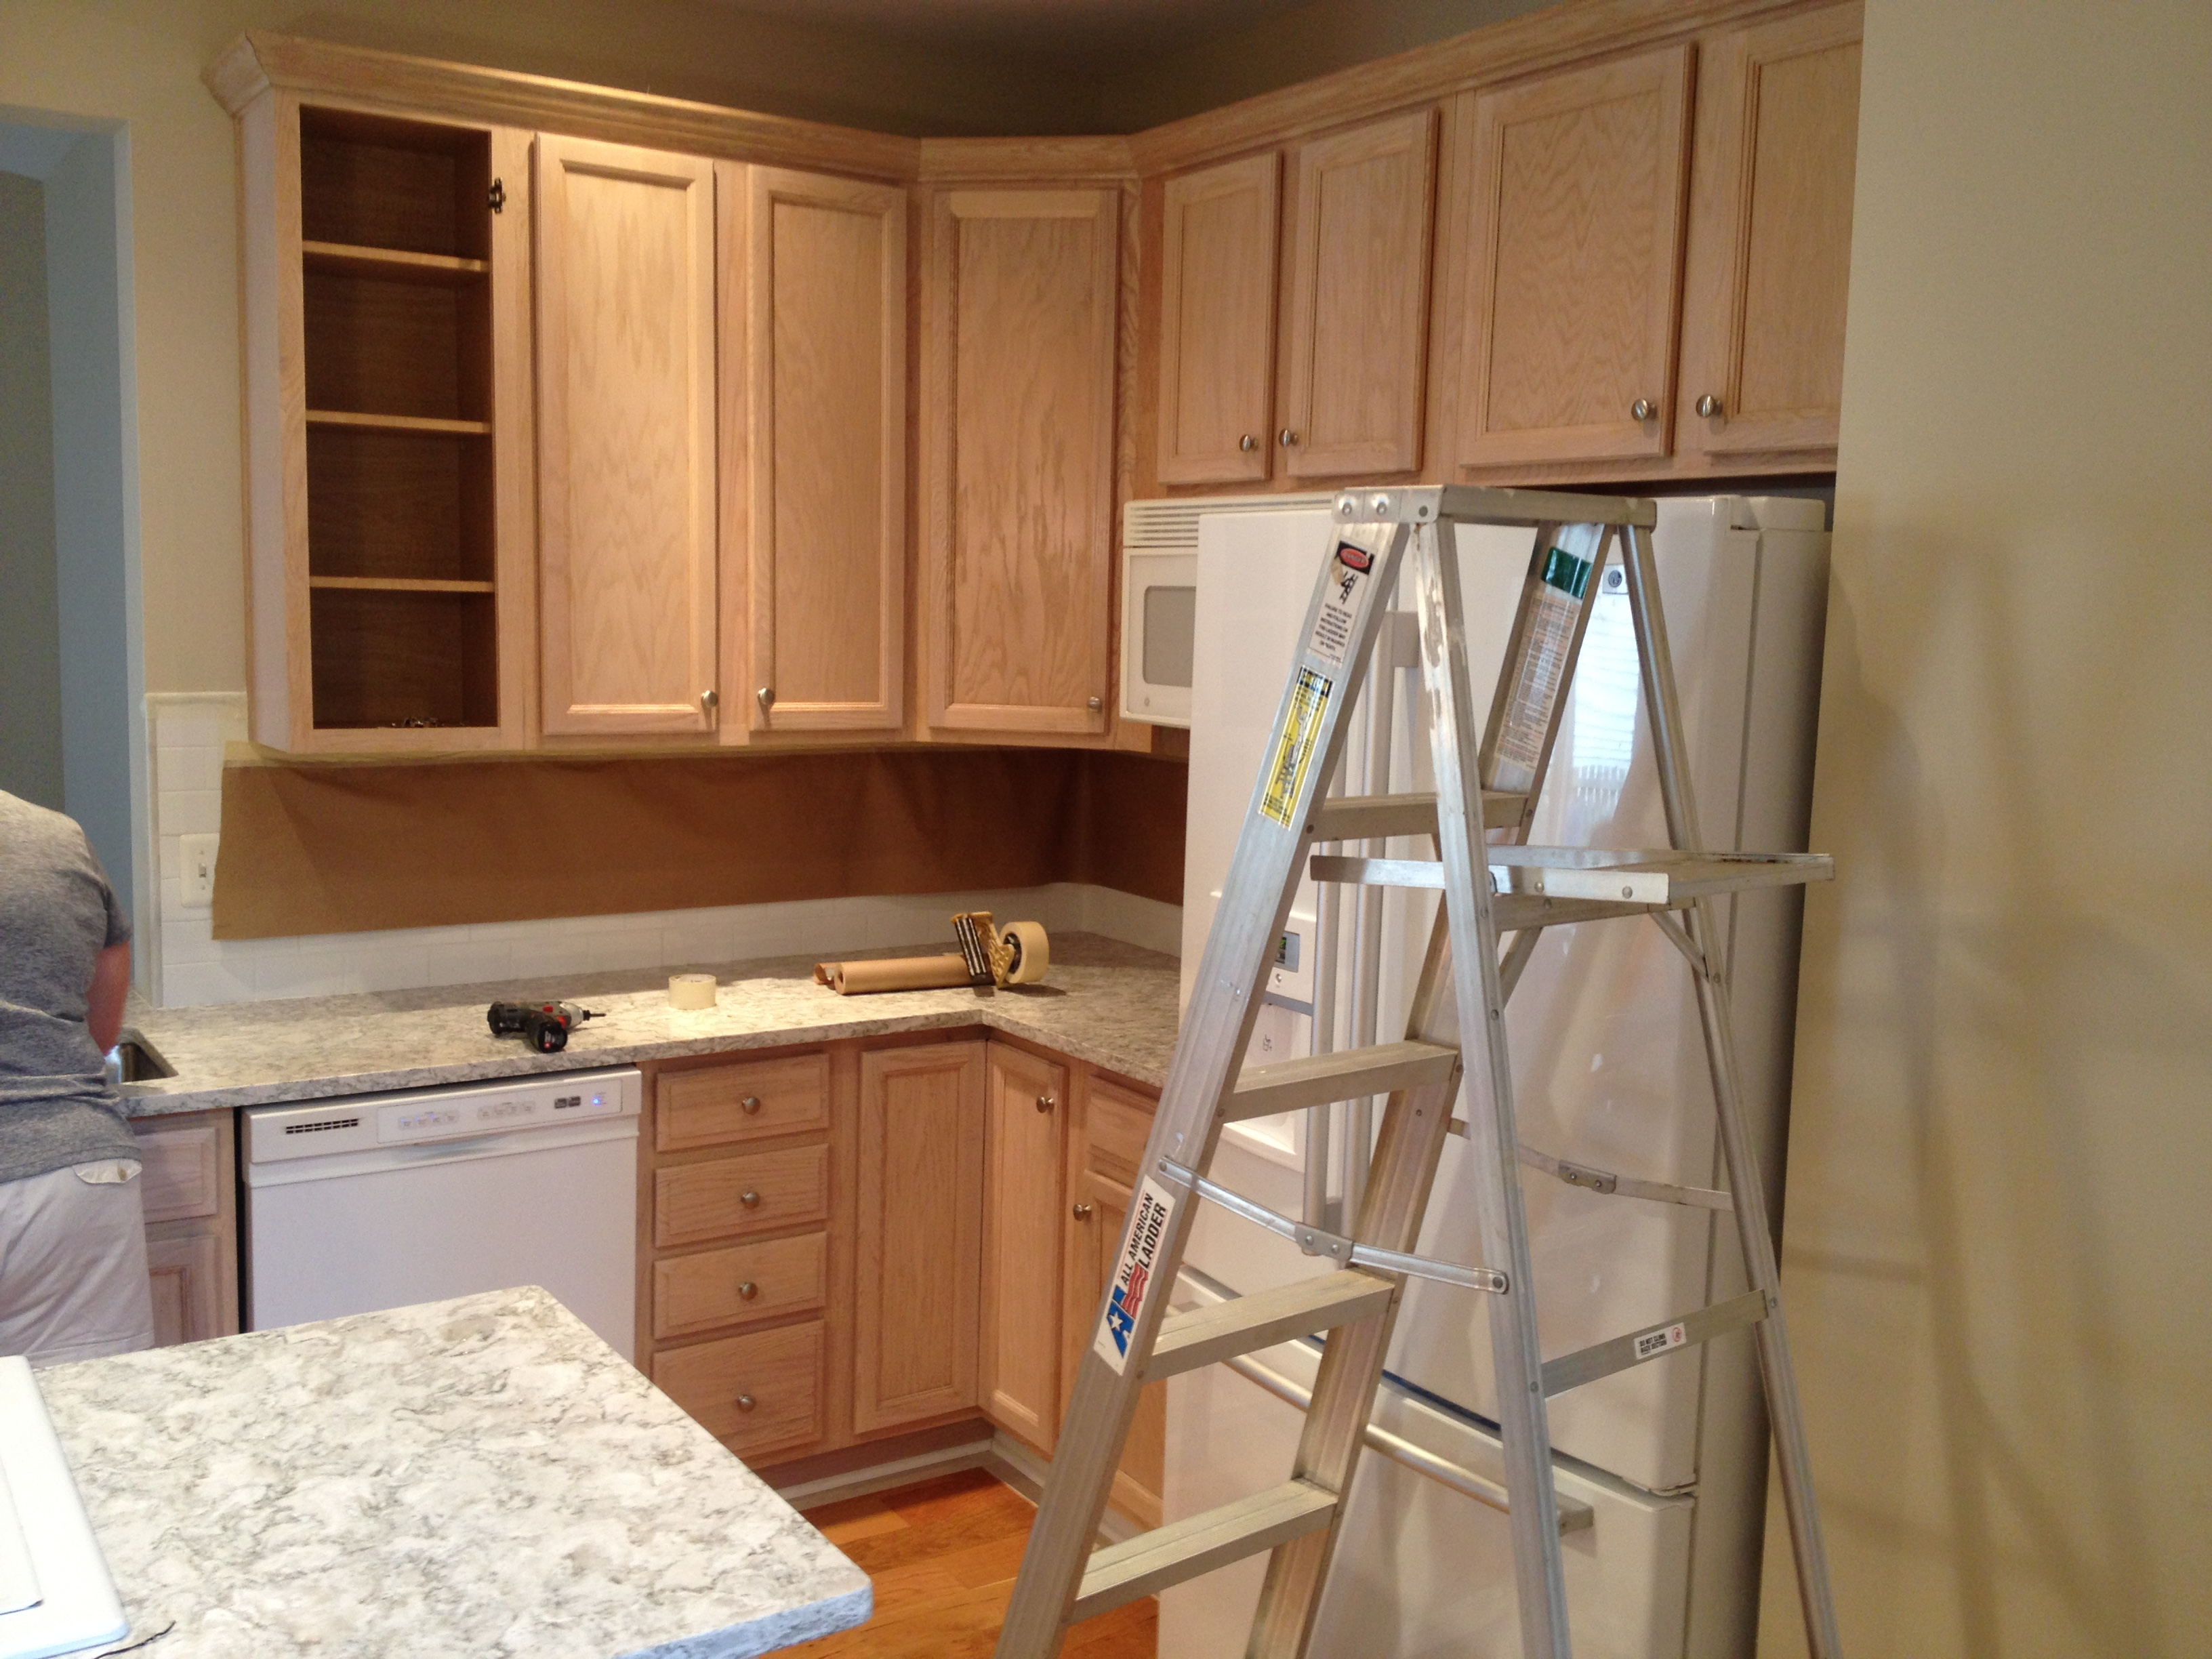 Kitchen Cabinet Painting American Painting ContractorsAmerican - Kitchen cabinet painters near me